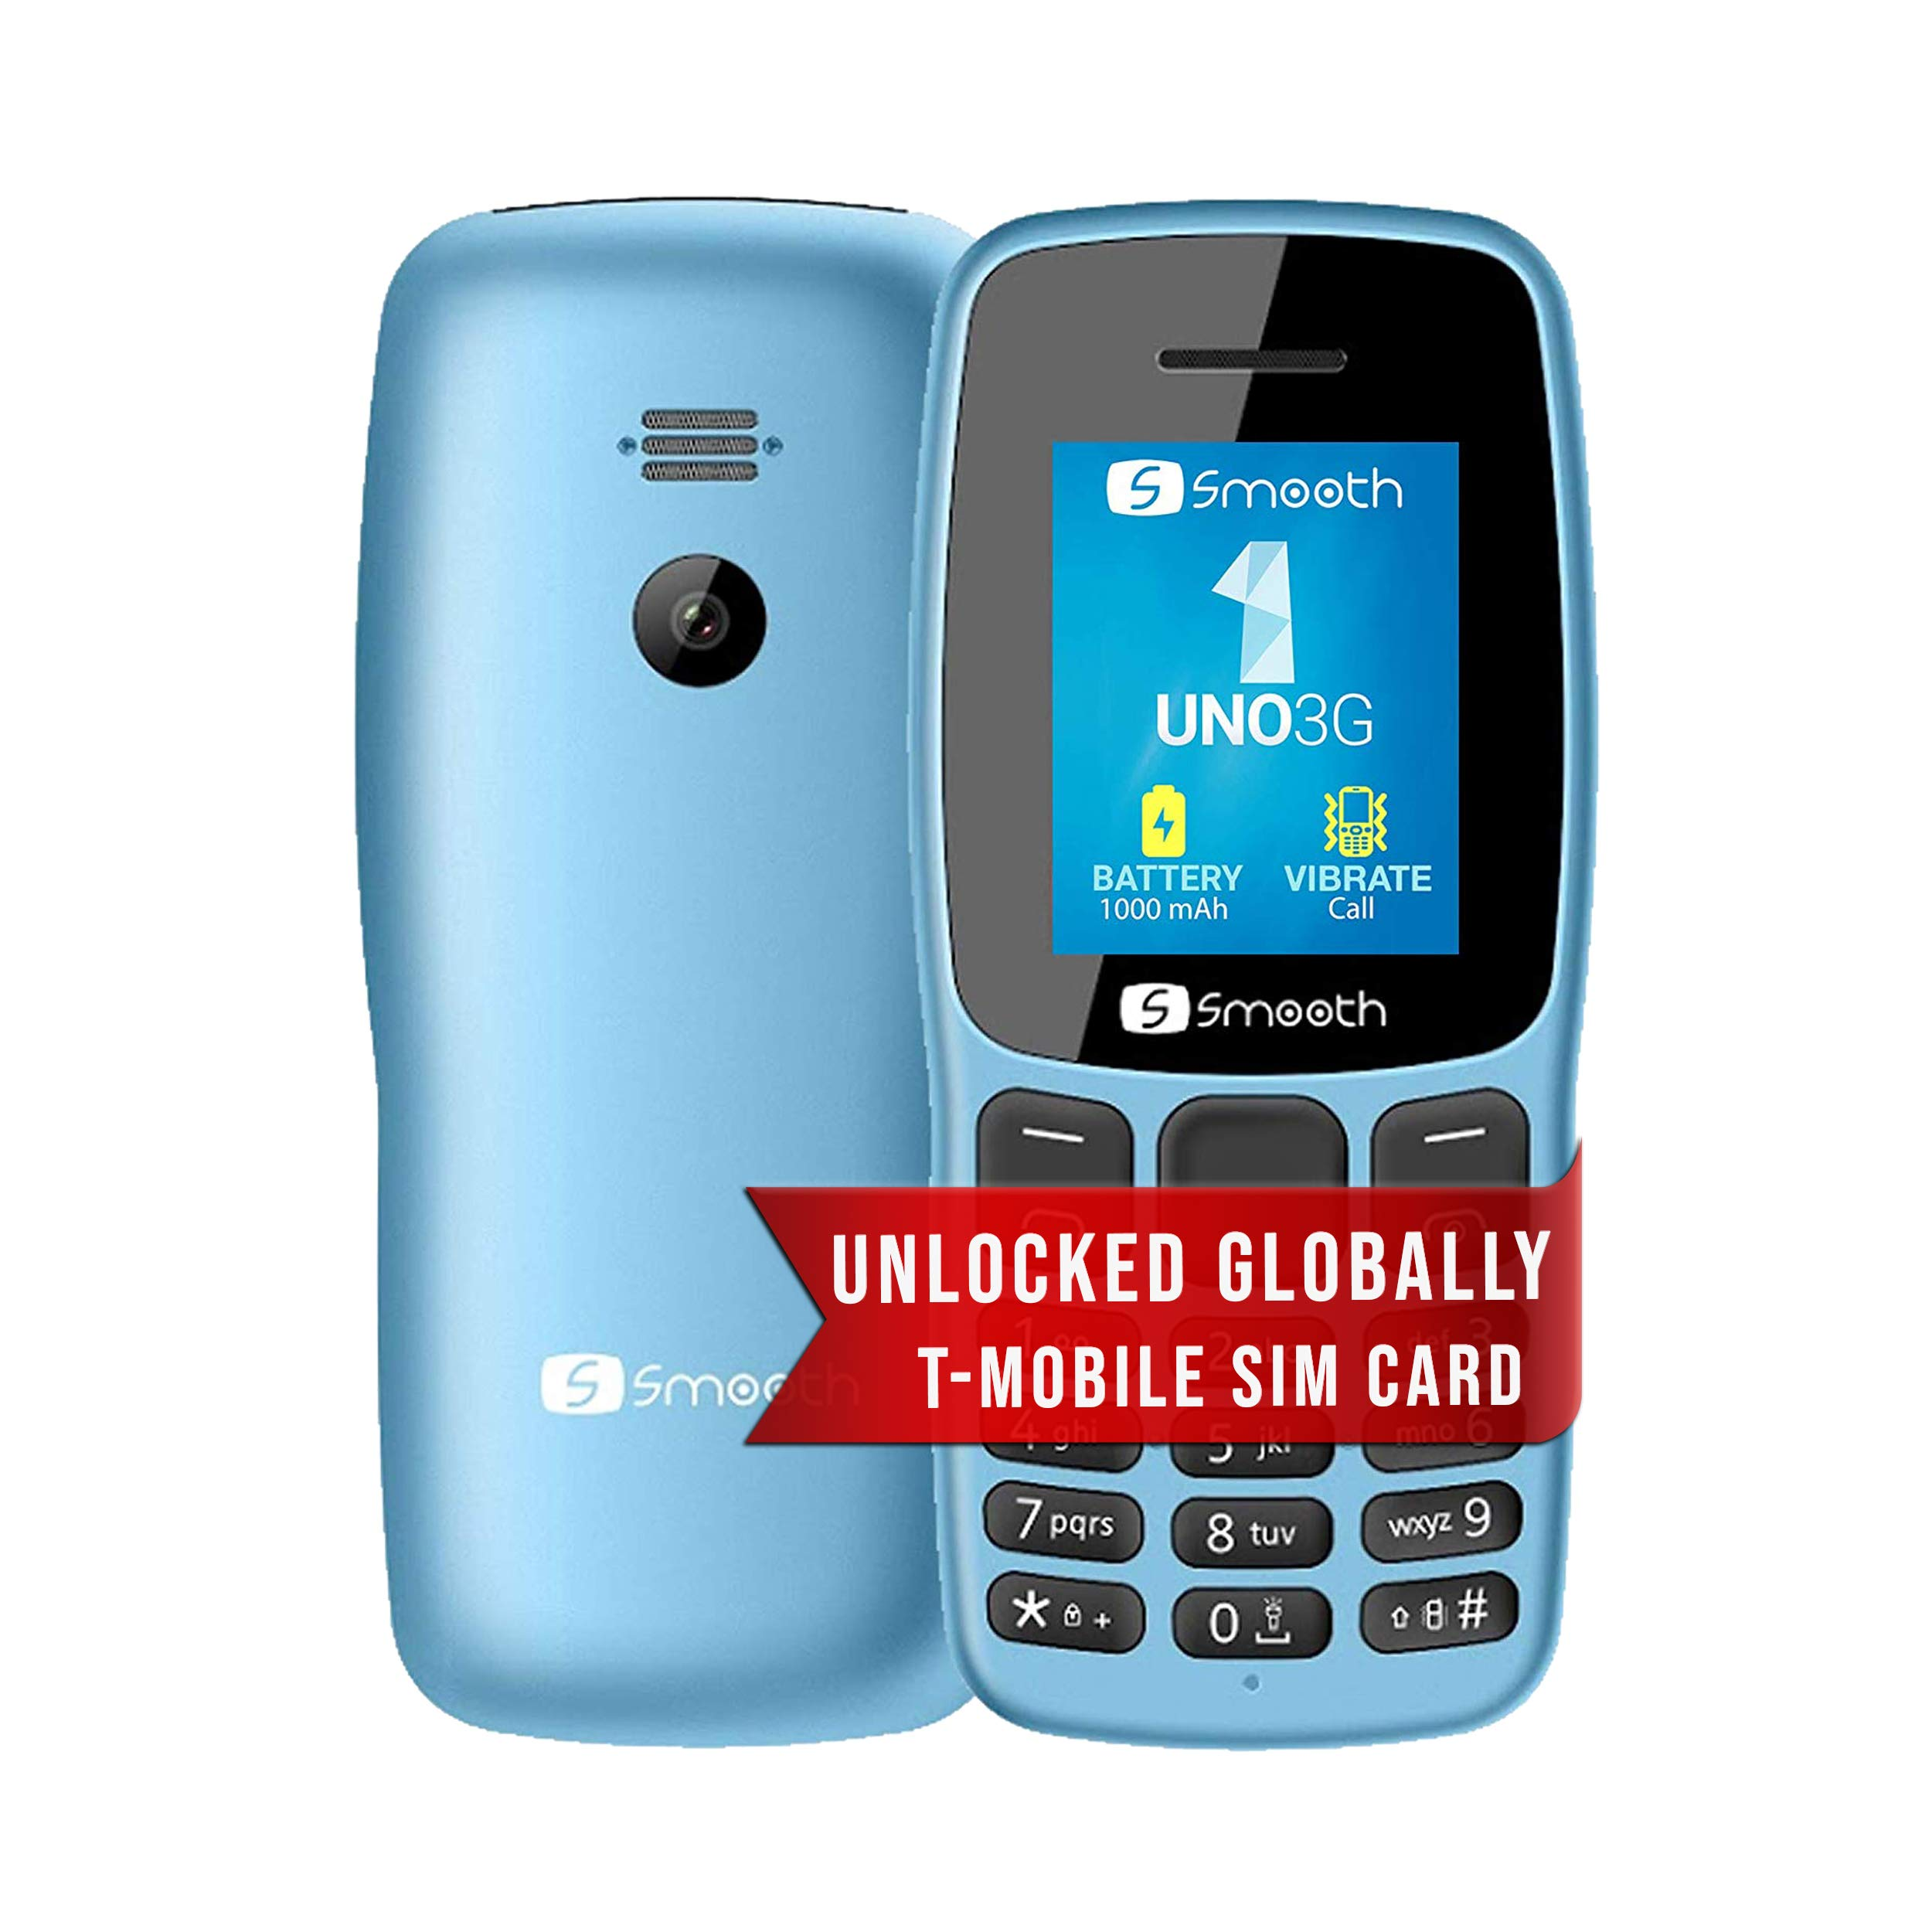 Unlocked 3G Phone -Uno by S Smooth - Celular Desbloqueado - Dual SIM - Includes SIM Card (T-Mobile) - Ready and Easy-to-Use, Compact & Durable - Great for Work, Seniors, Kids, Back-Up (Light Blue)